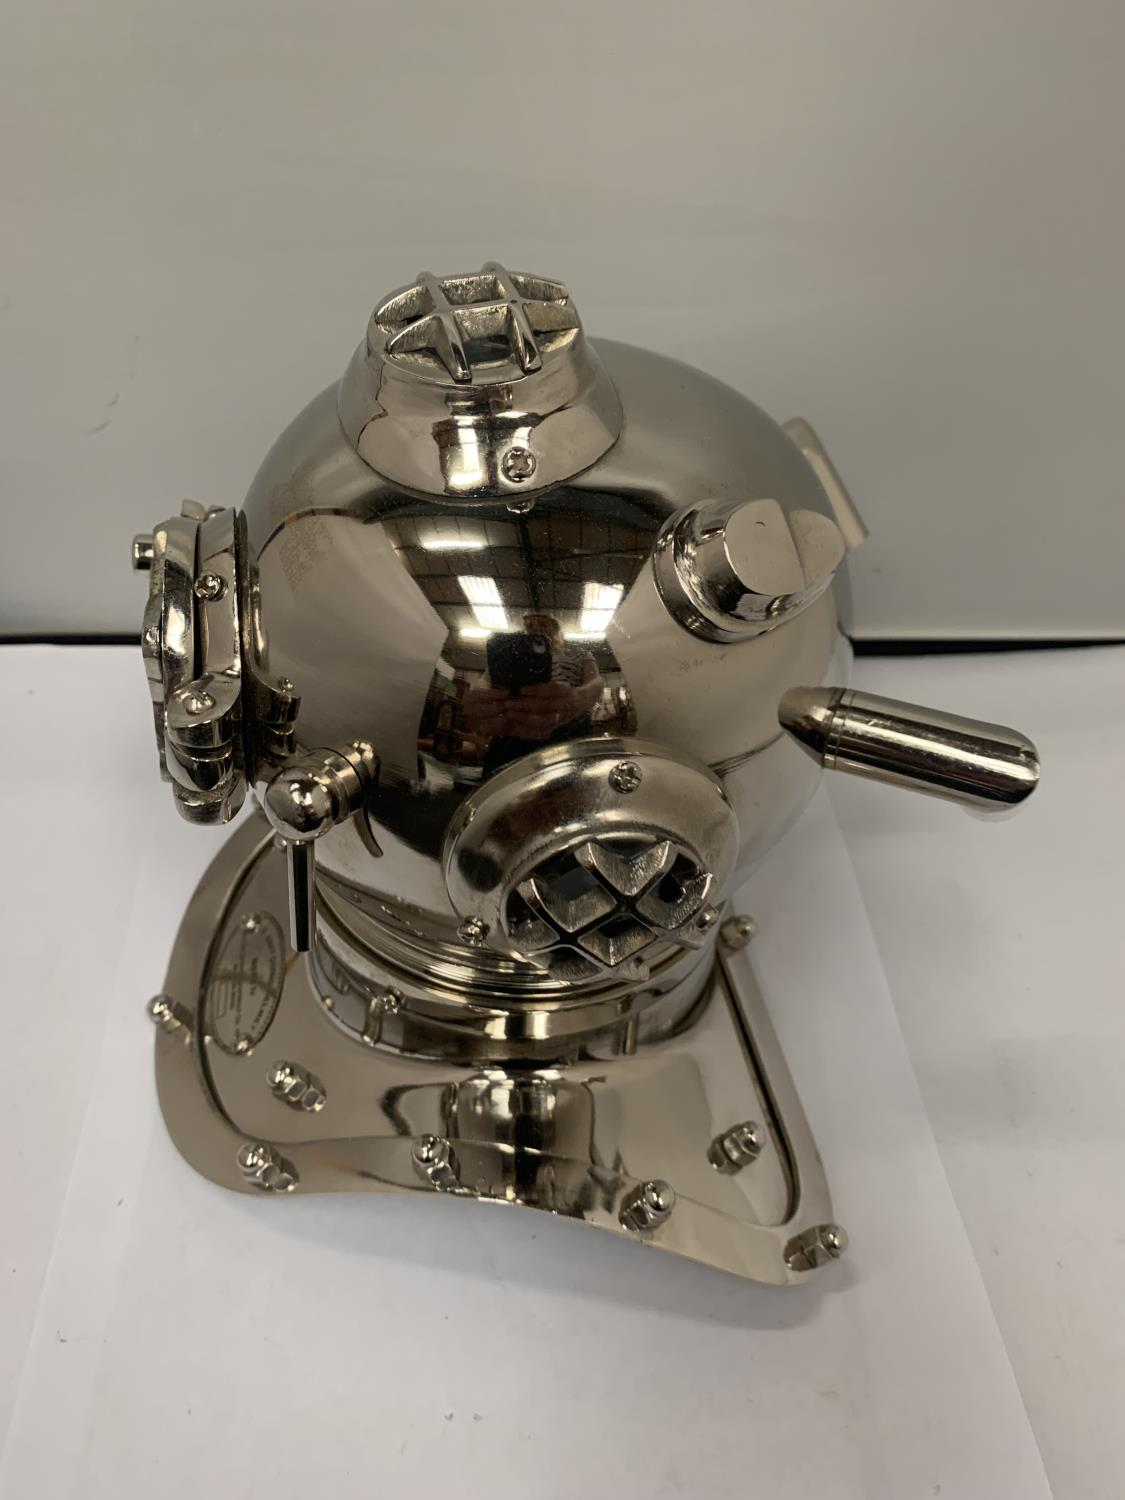 A CHROME MODEL OF A DIVERS HELMET - Image 2 of 3